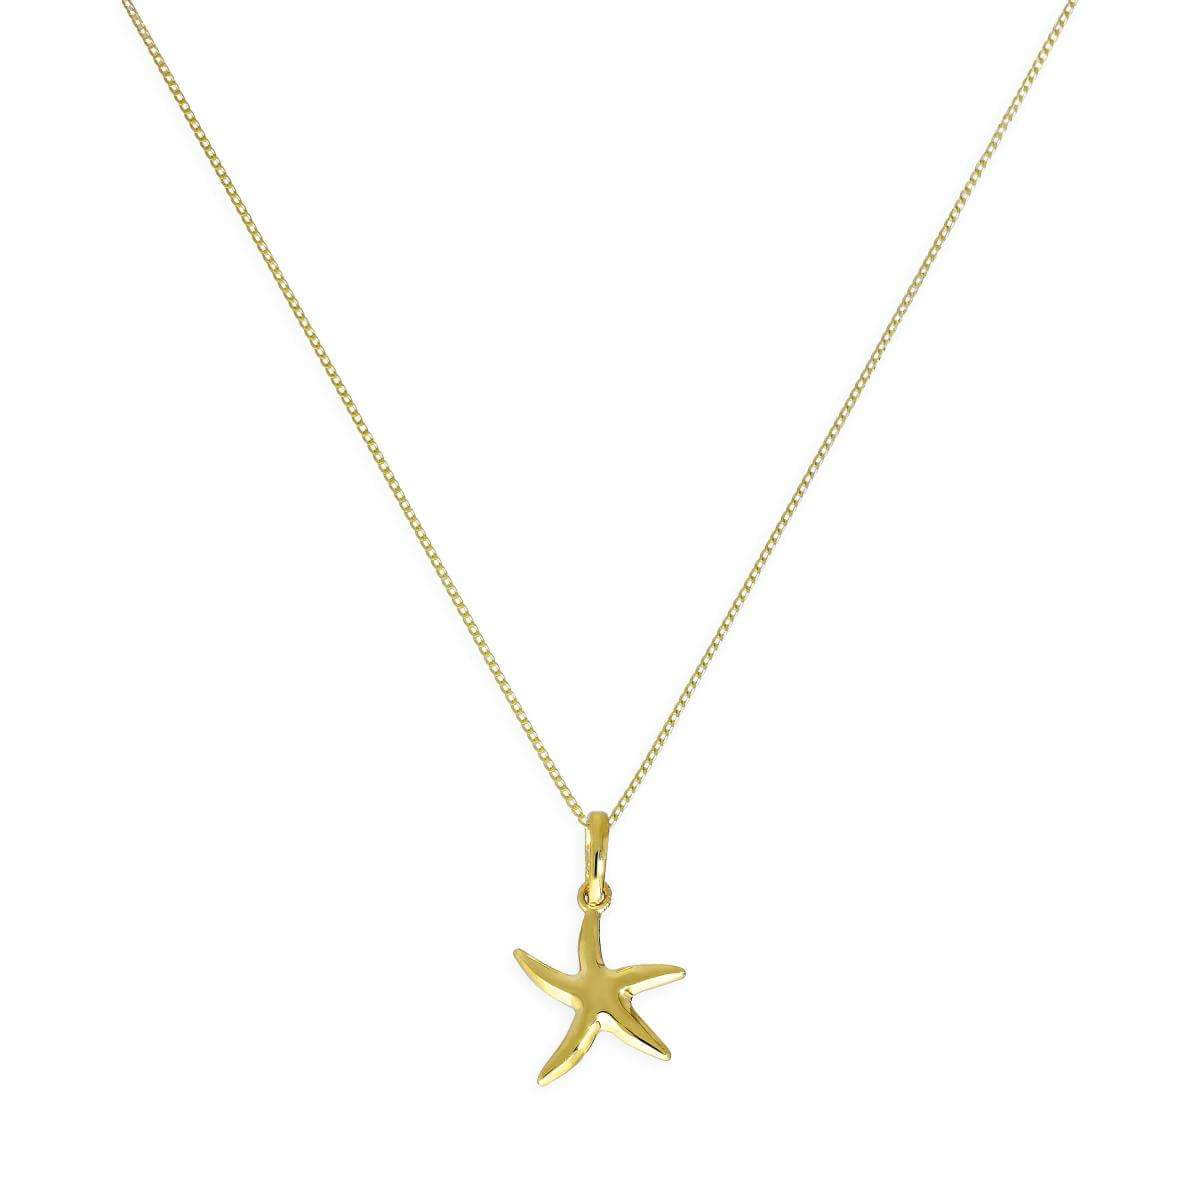 9ct Gold Starfish Pendant Necklace 16 - 20 Inches